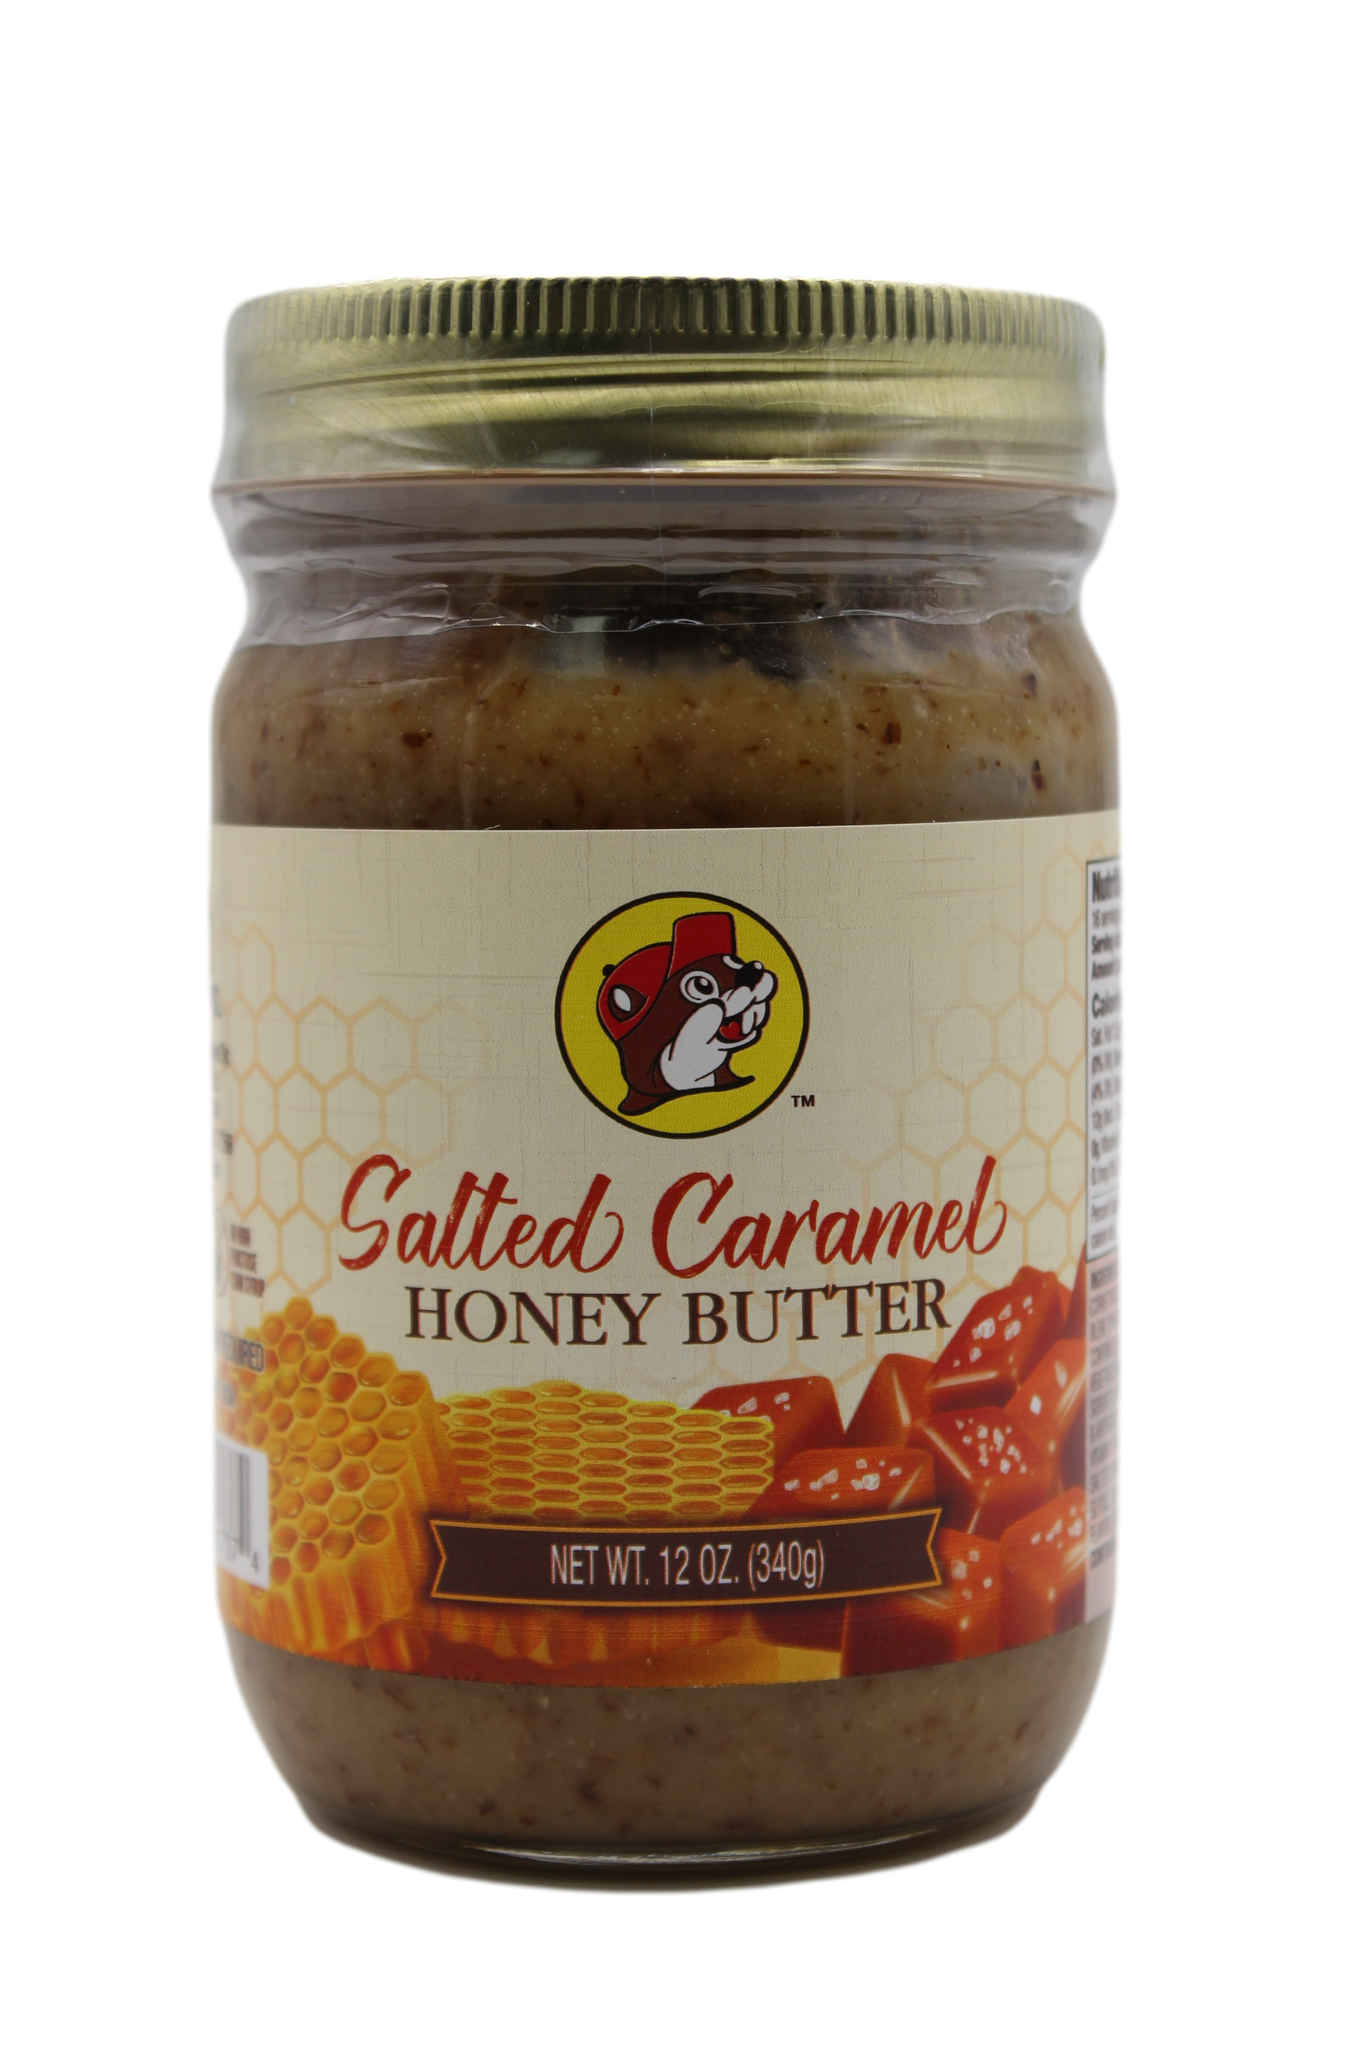 Salted Caramel Honey Butter